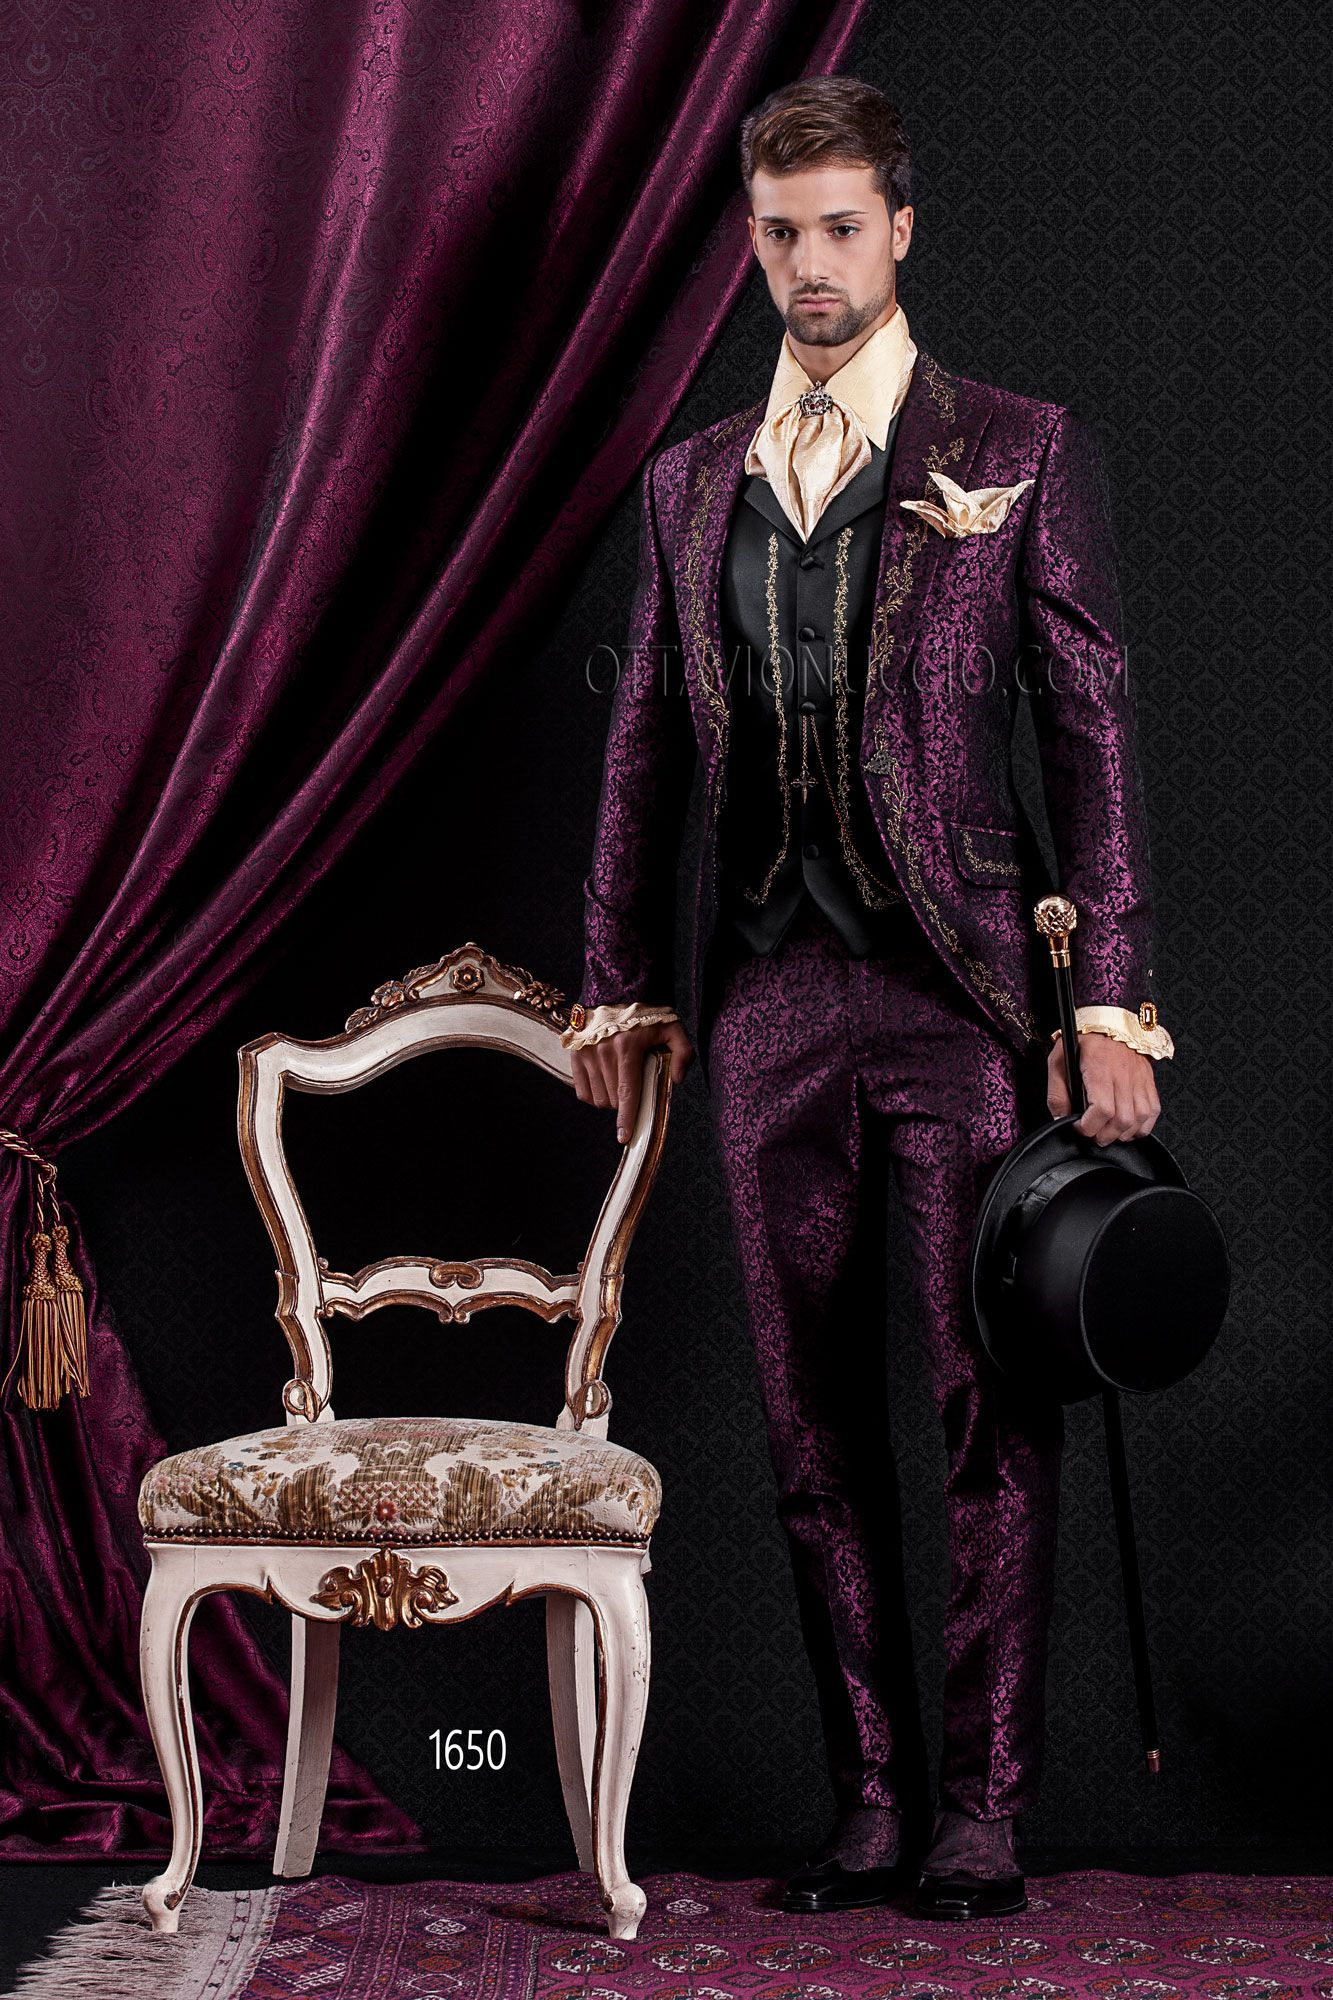 Purple damasked wedding suit for groom with embroidered vest www ...